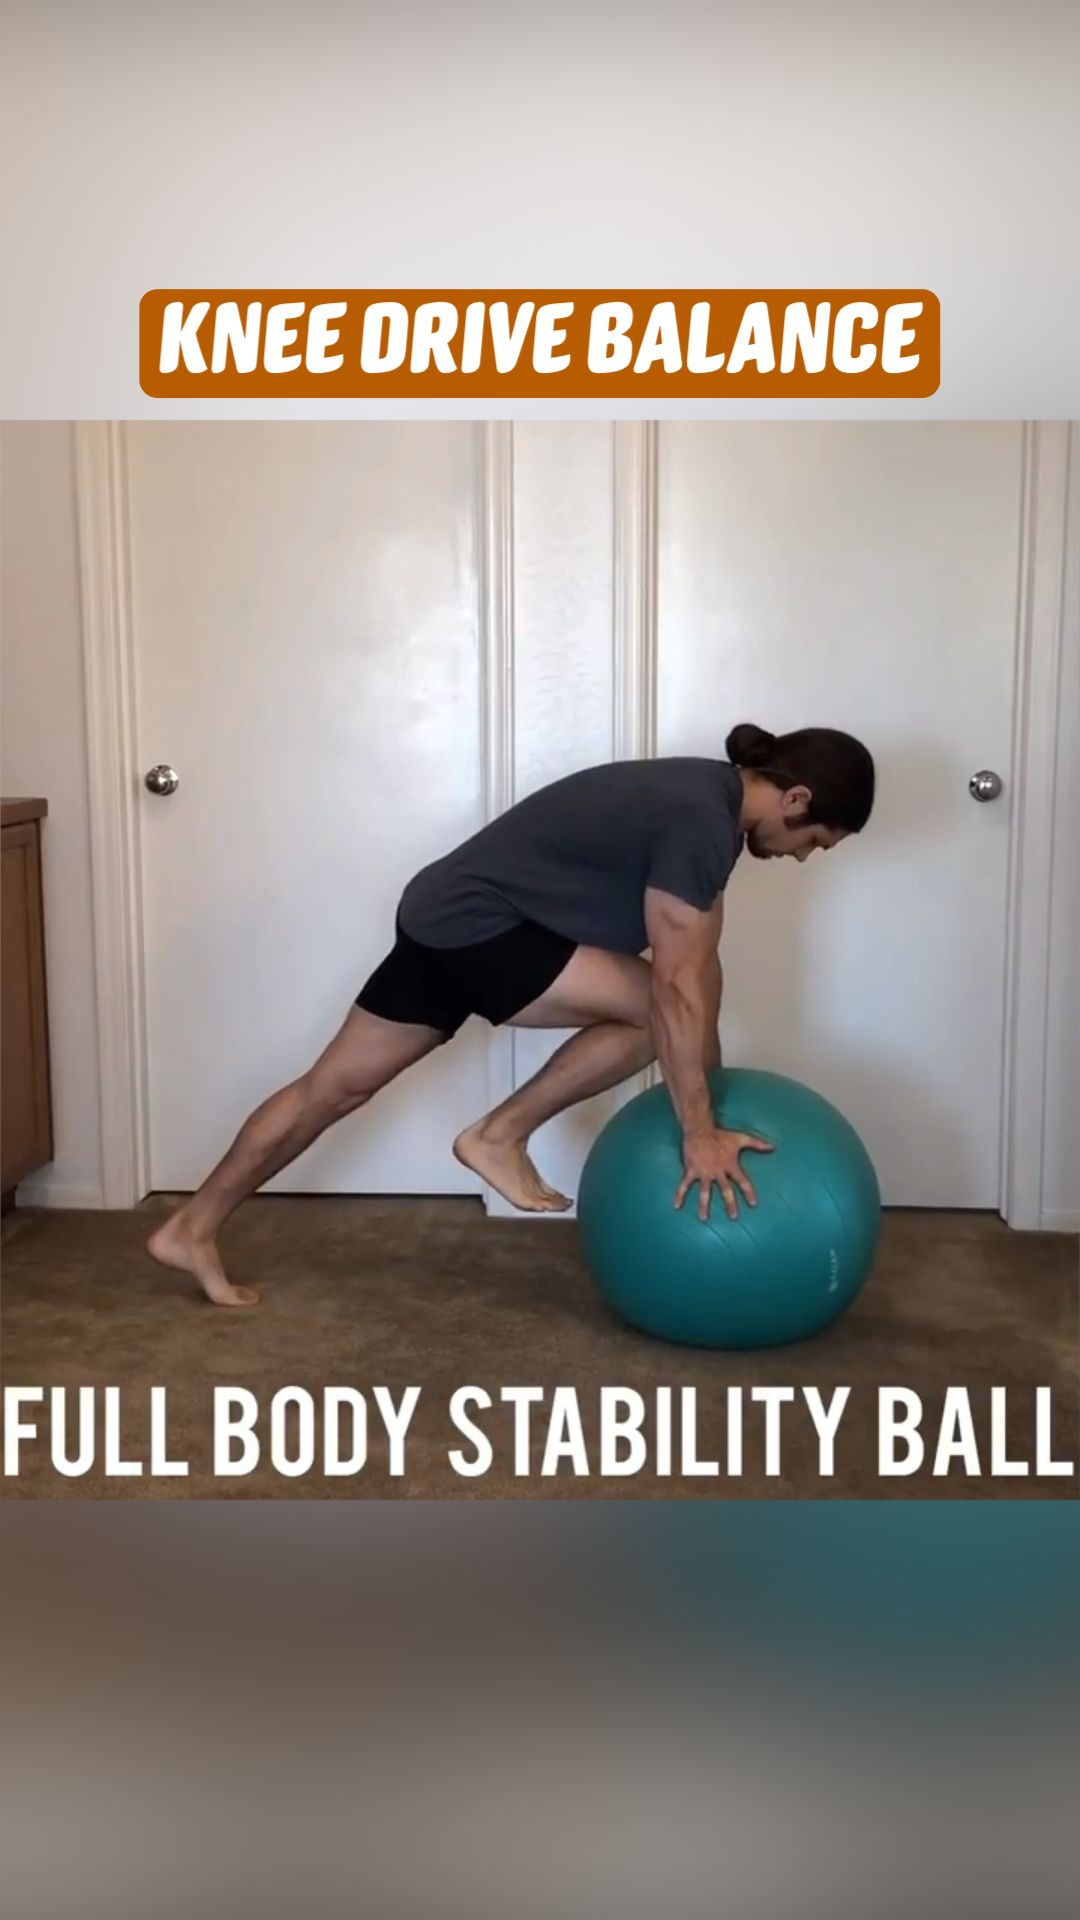 ⚗️ Stability ball workout! ⚗️